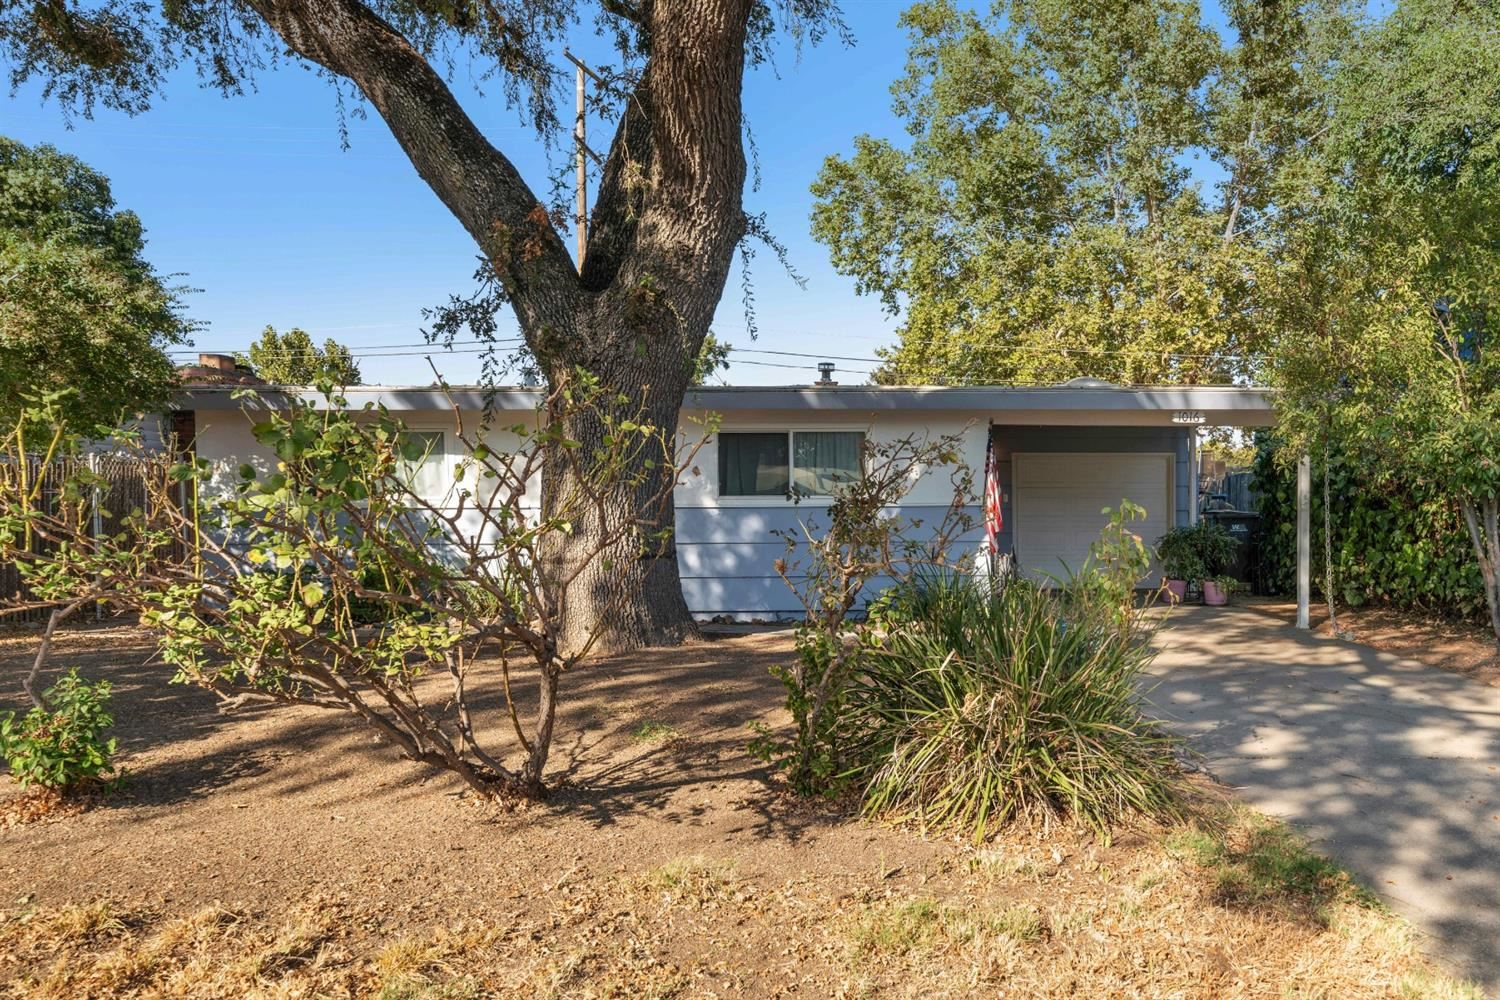 Photo of 1016 Elliot Street, West Sacramento, CA 95605 (MLS # 20063105)